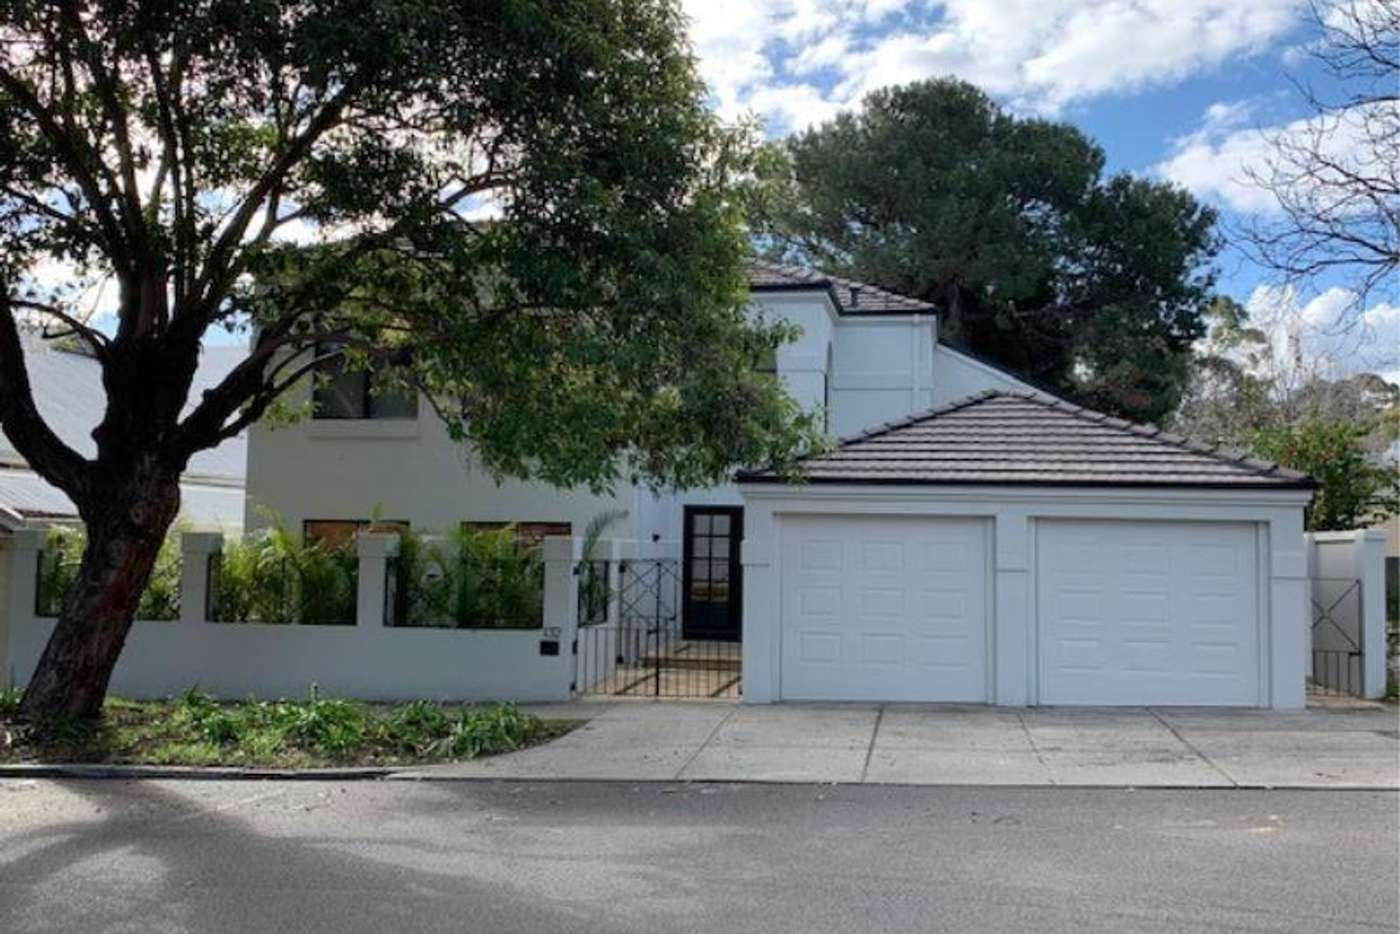 Main view of Homely house listing, 132 Woolwich Street, West Leederville WA 6007